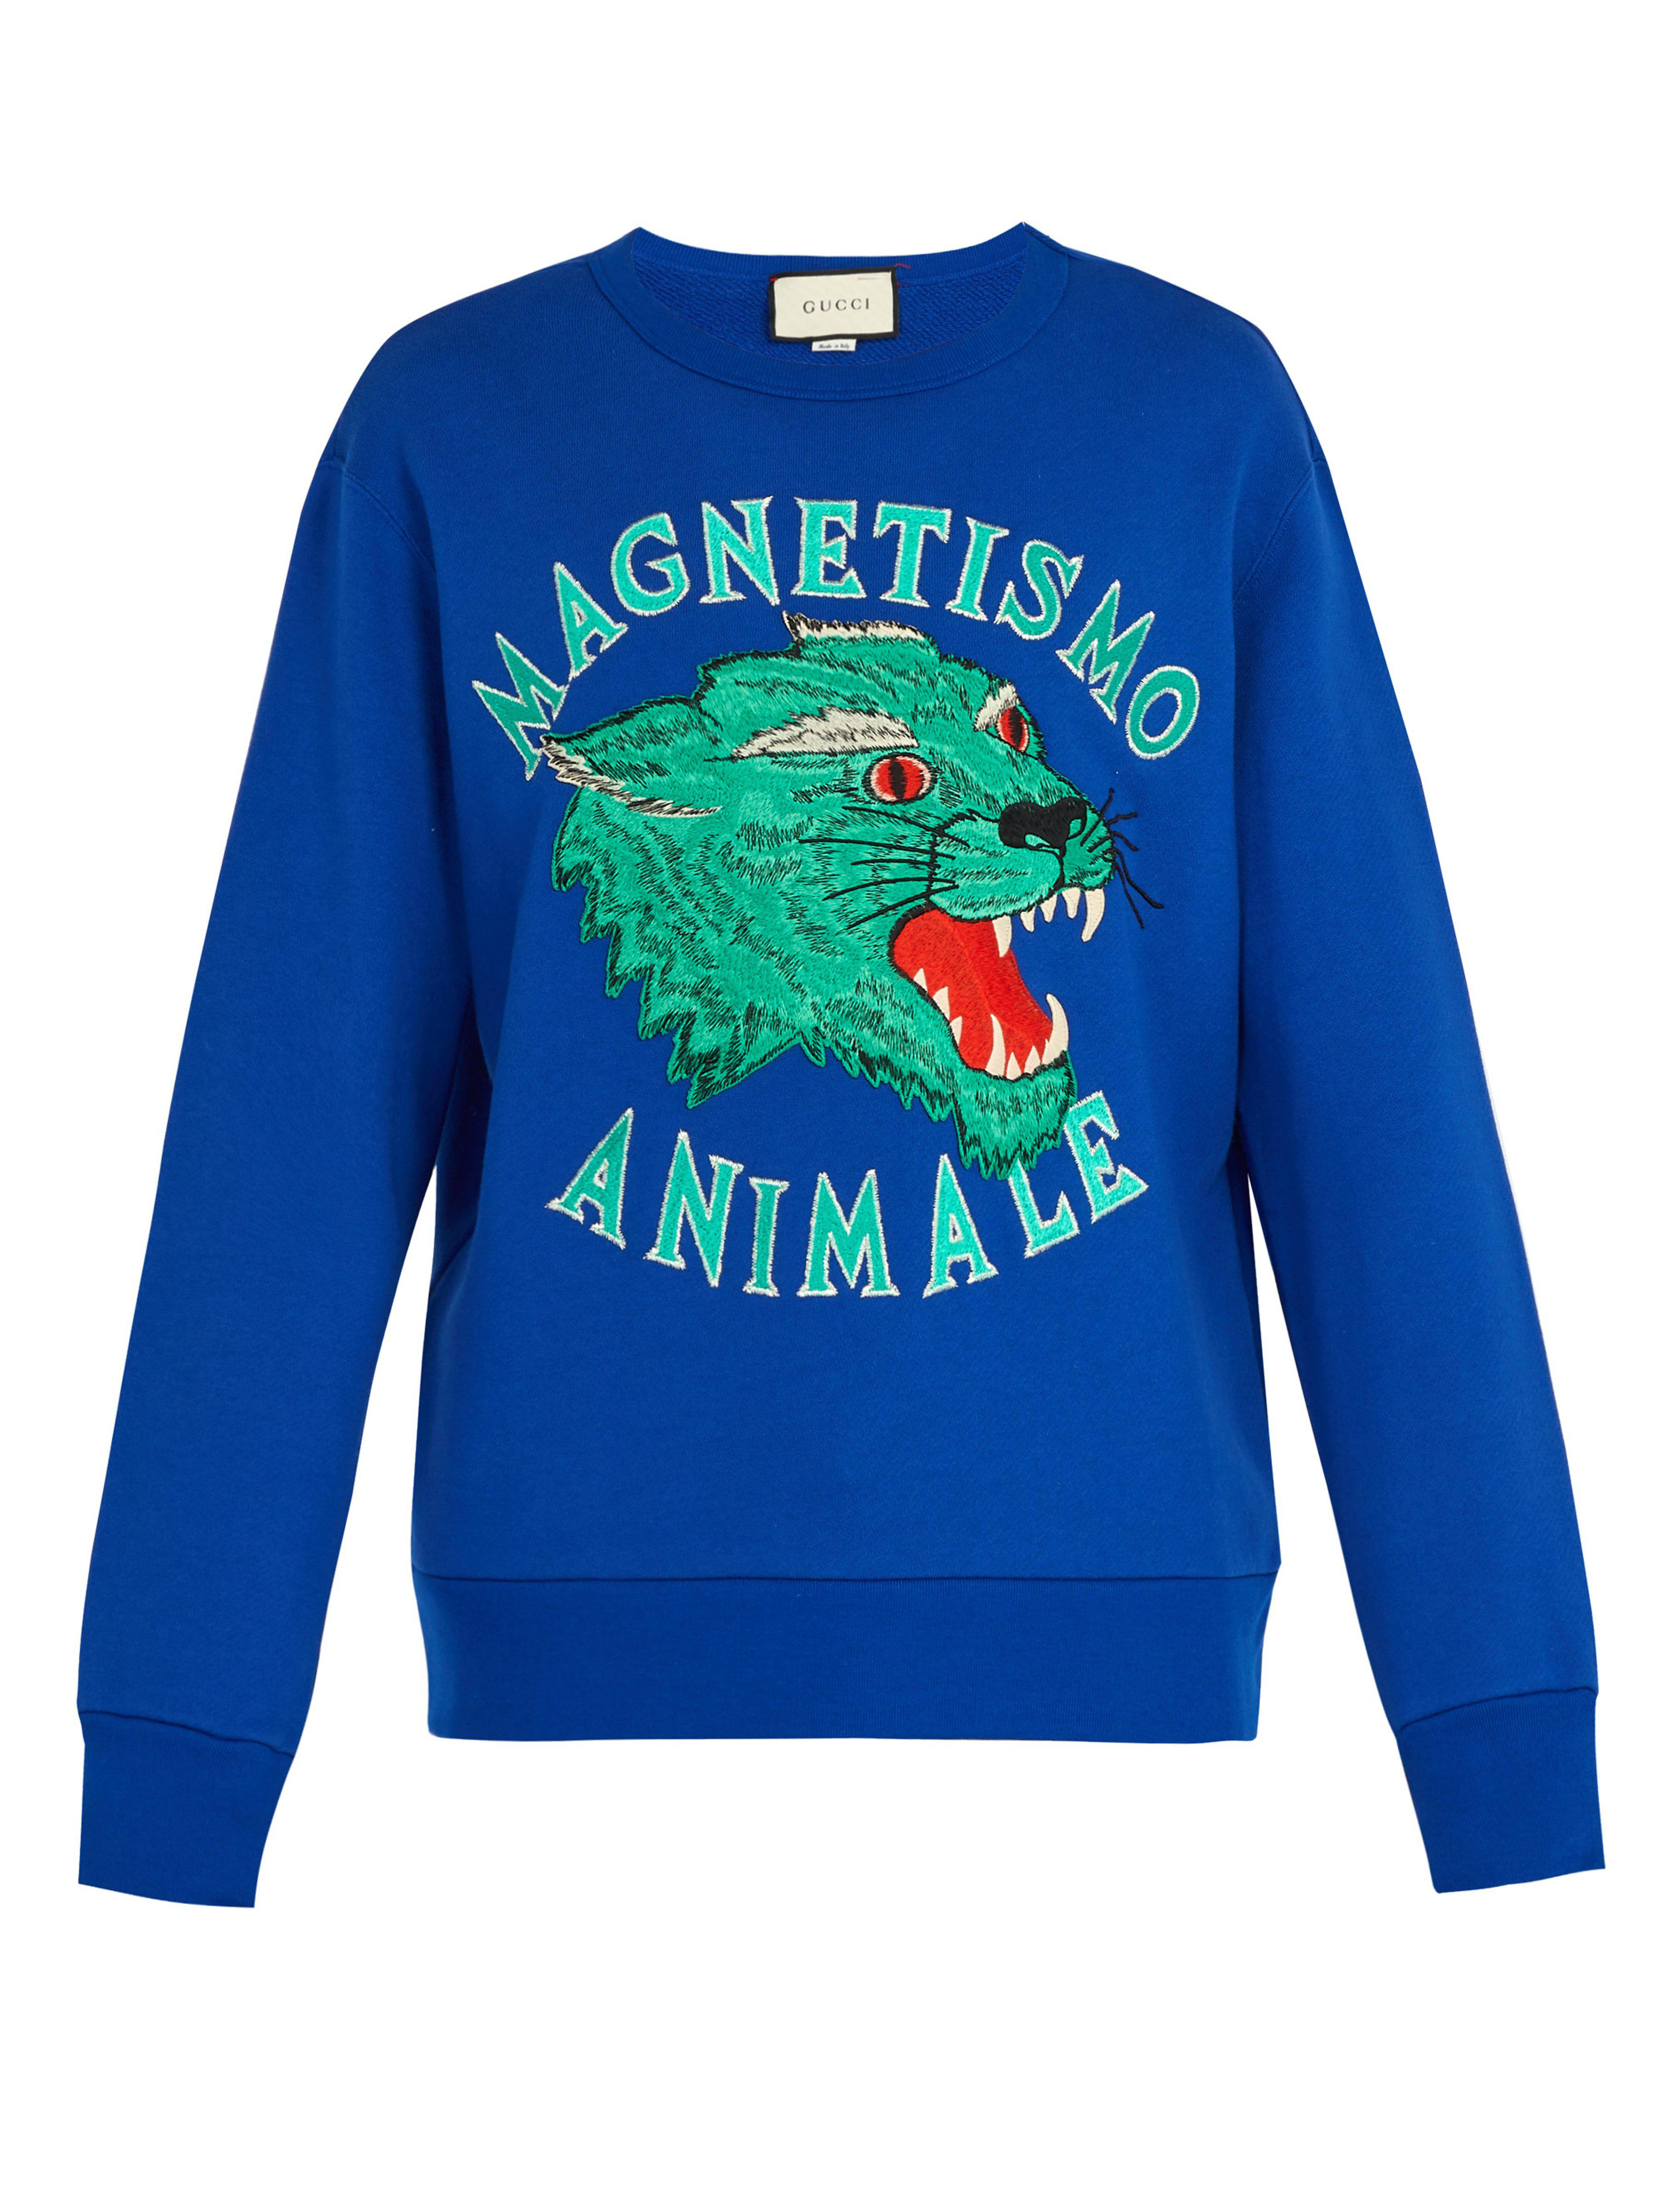 8c677cbc03b Gucci - Blue Panther Embroidered Cotton Sweatshirt for Men - Lyst. View  fullscreen